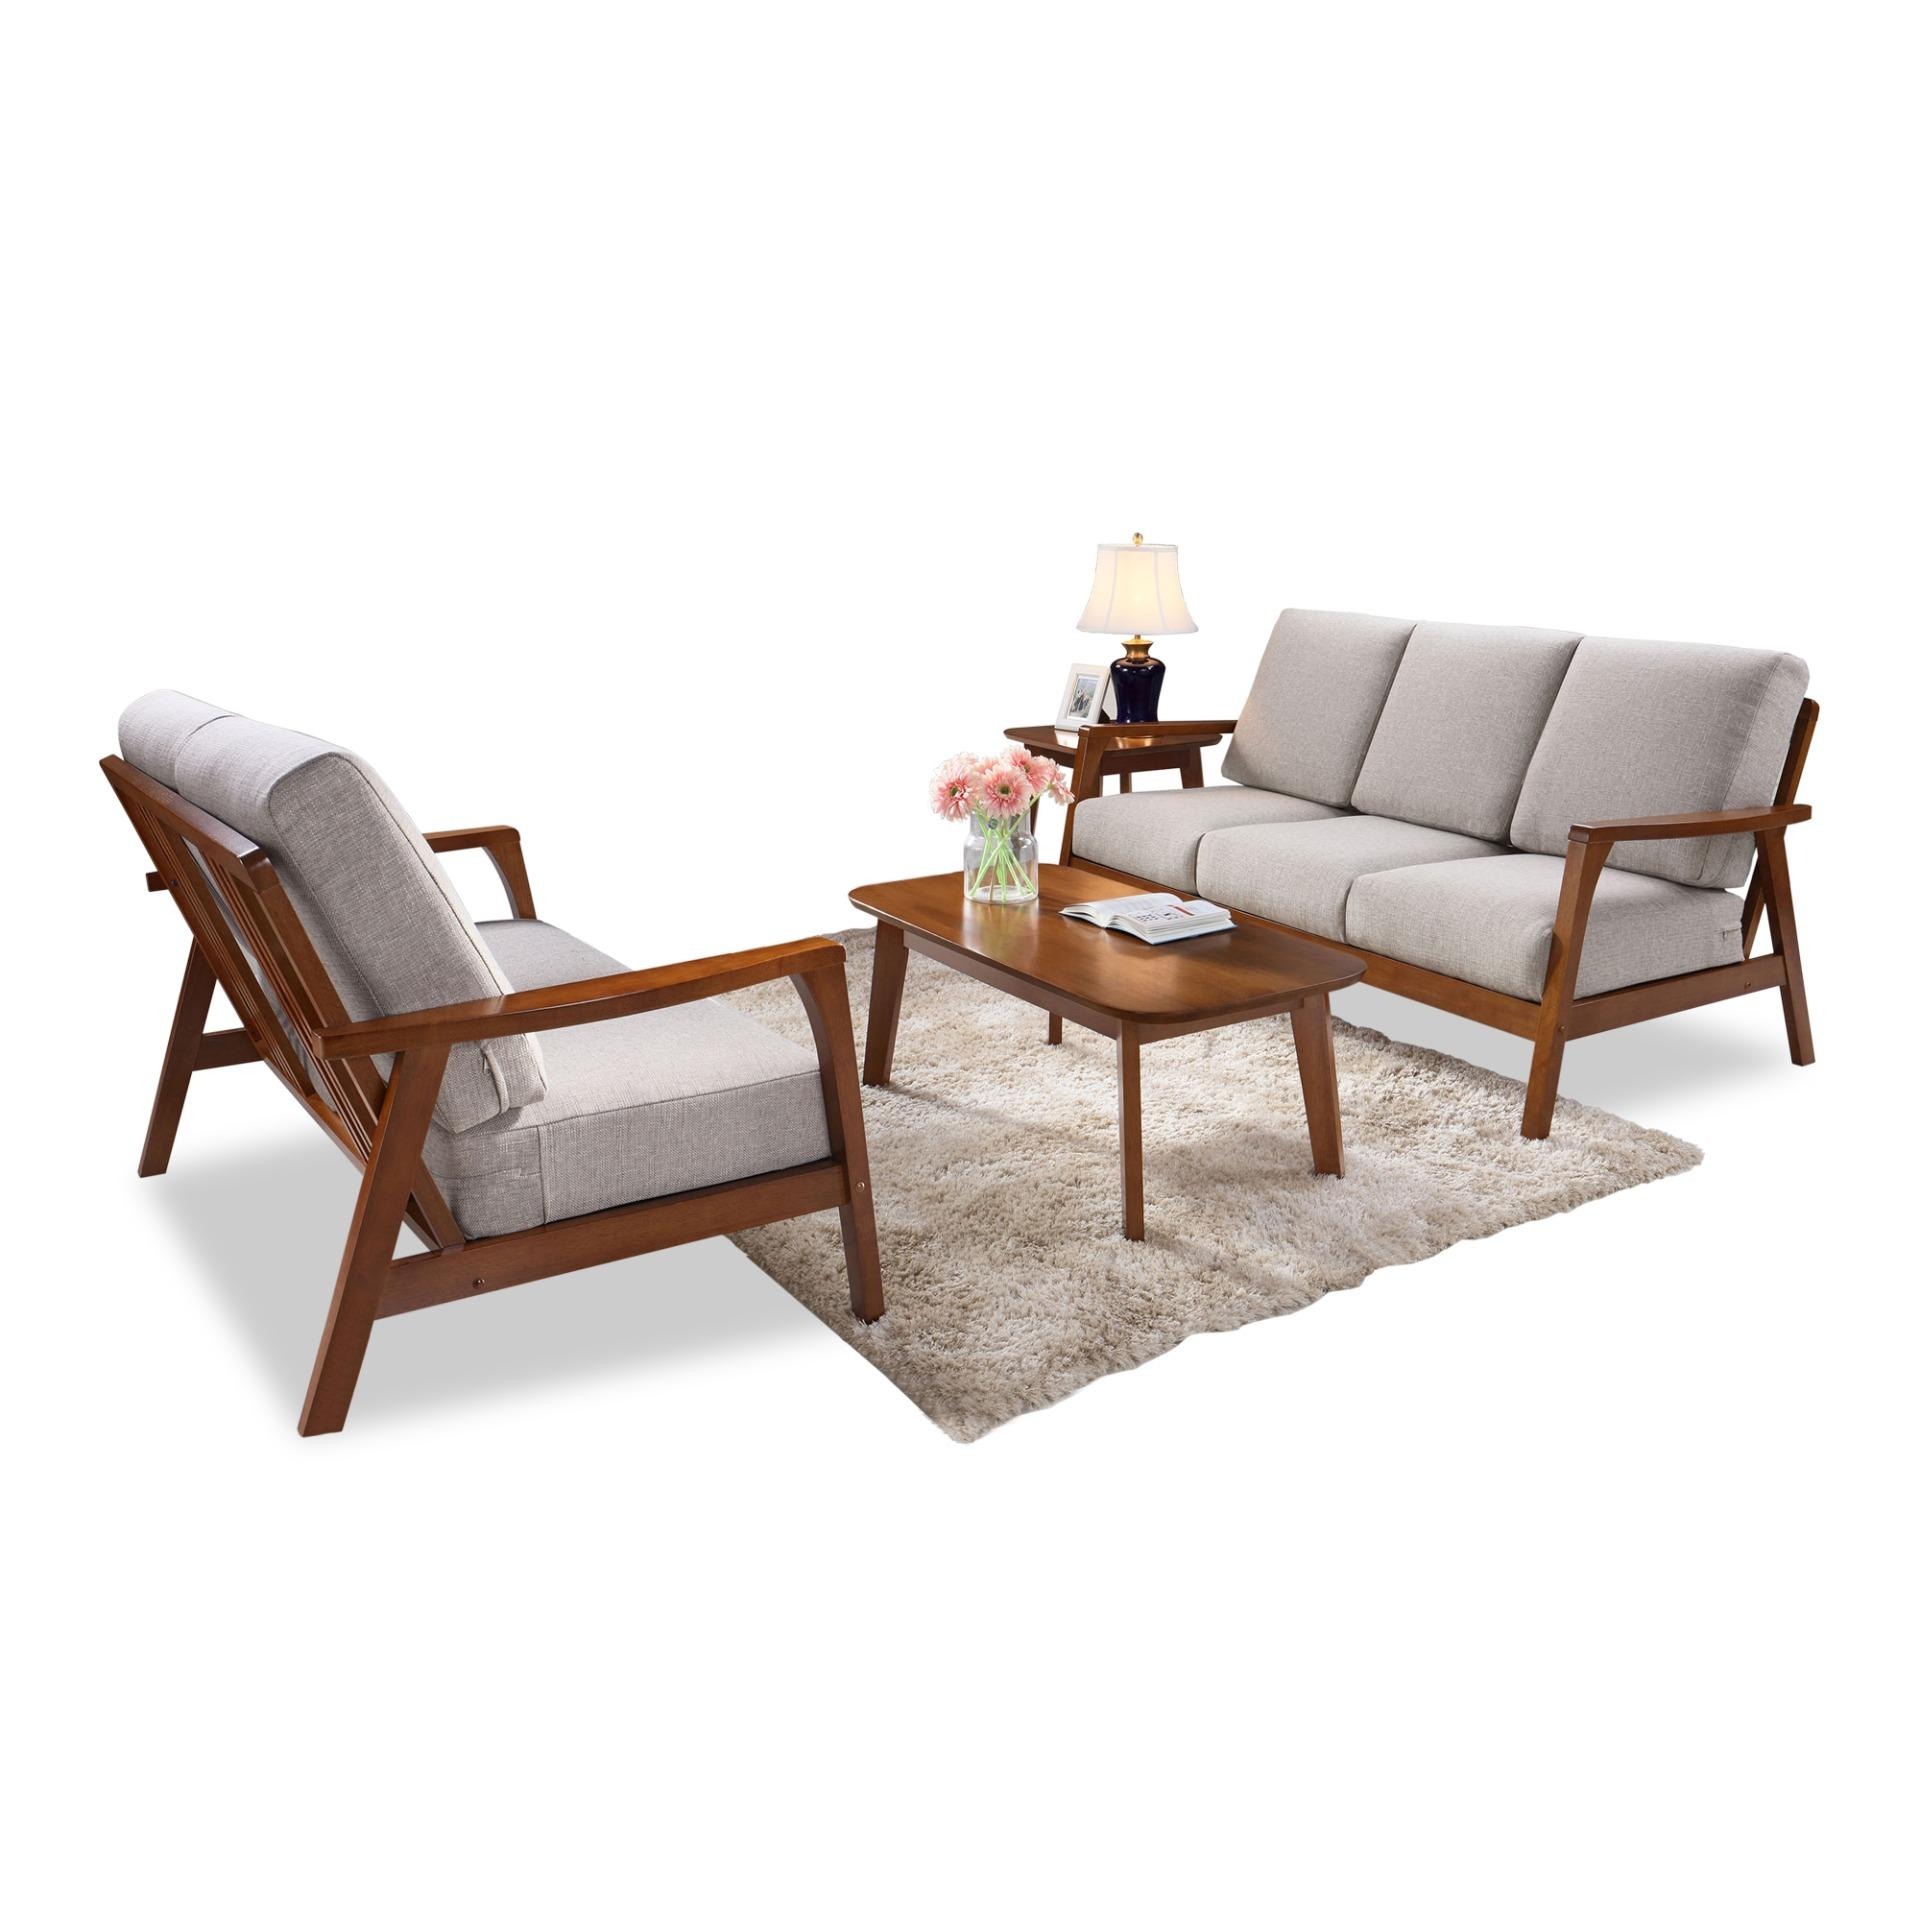 Axel 3+2 Seater Sofa With Coffee Table and Side Table (FREE DELIVERY)(FREE ASSEMBLY)